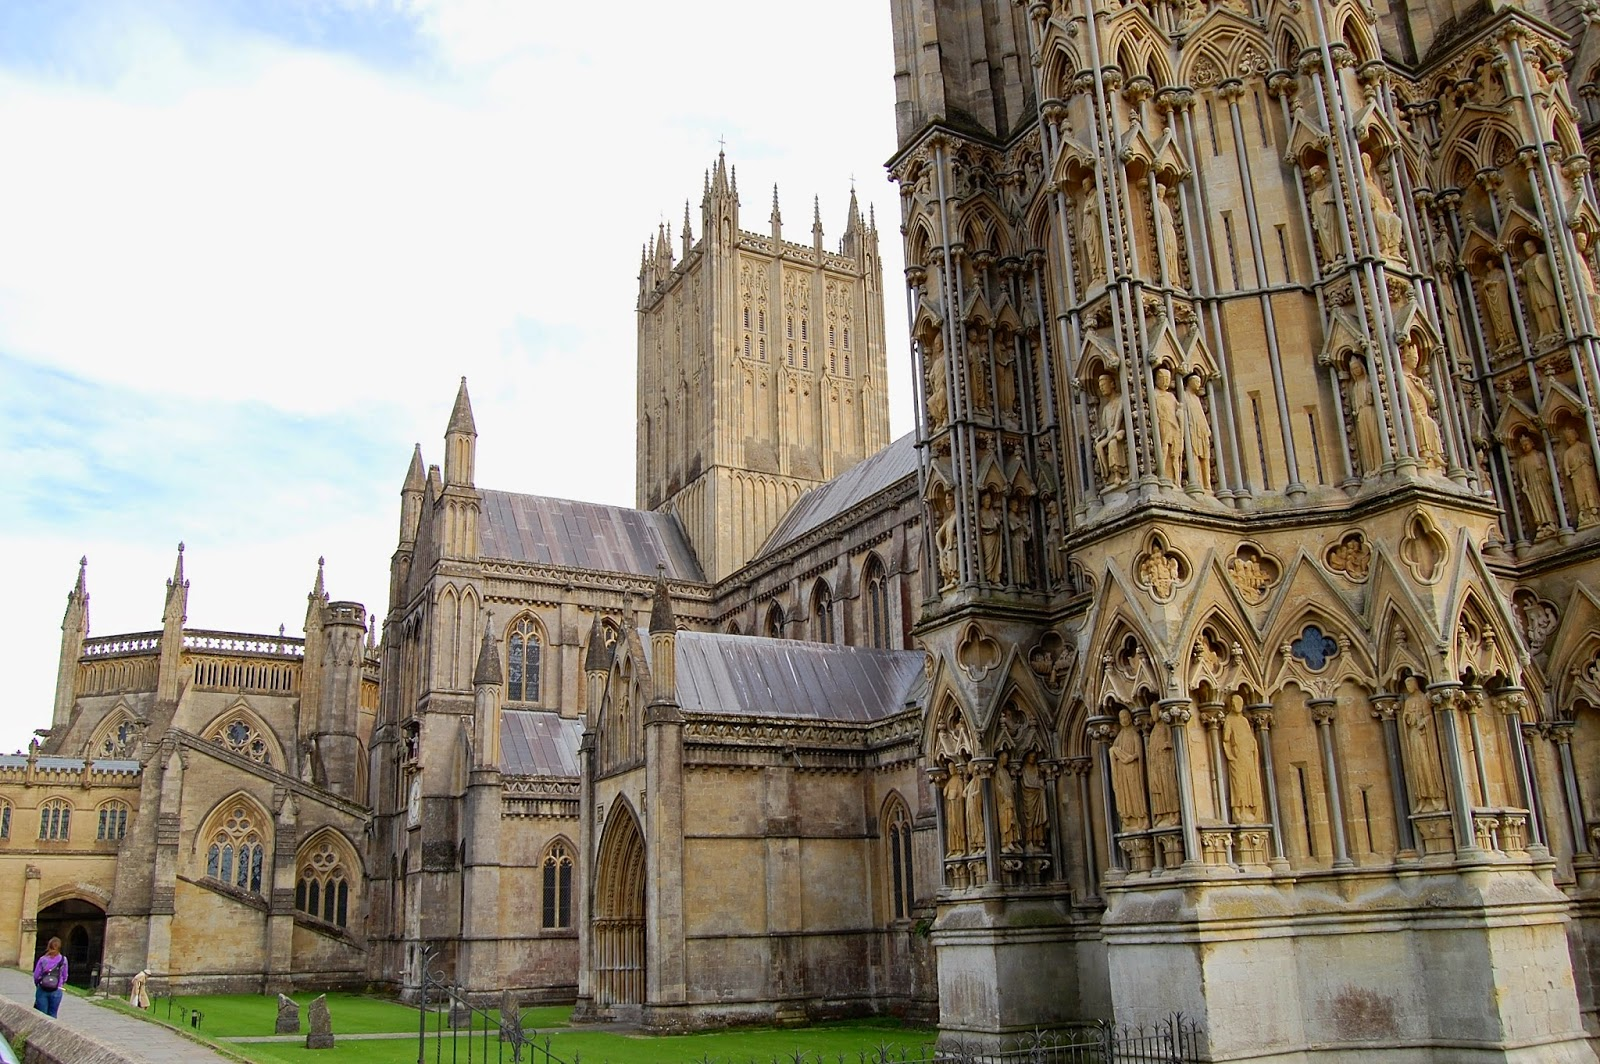 North porch and side view of Wells Cathedral